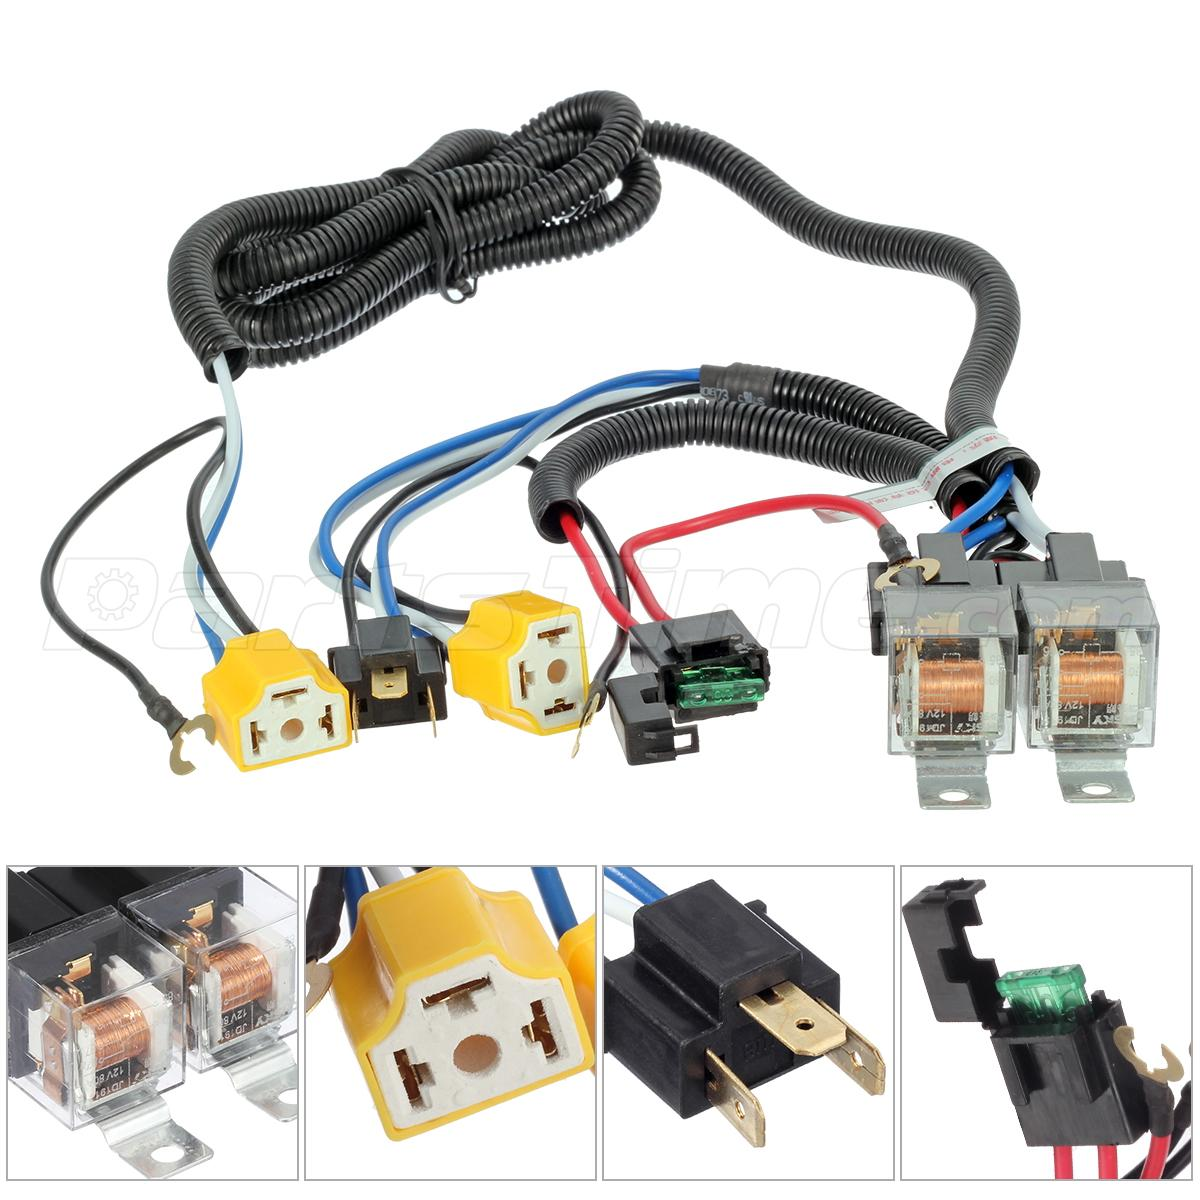 ceramic h4 headlight relay wiring harness 2 headlamp light bulb ceramic h4 headlight relay wiring harness 2 headlamp light bulb socket plugs 7